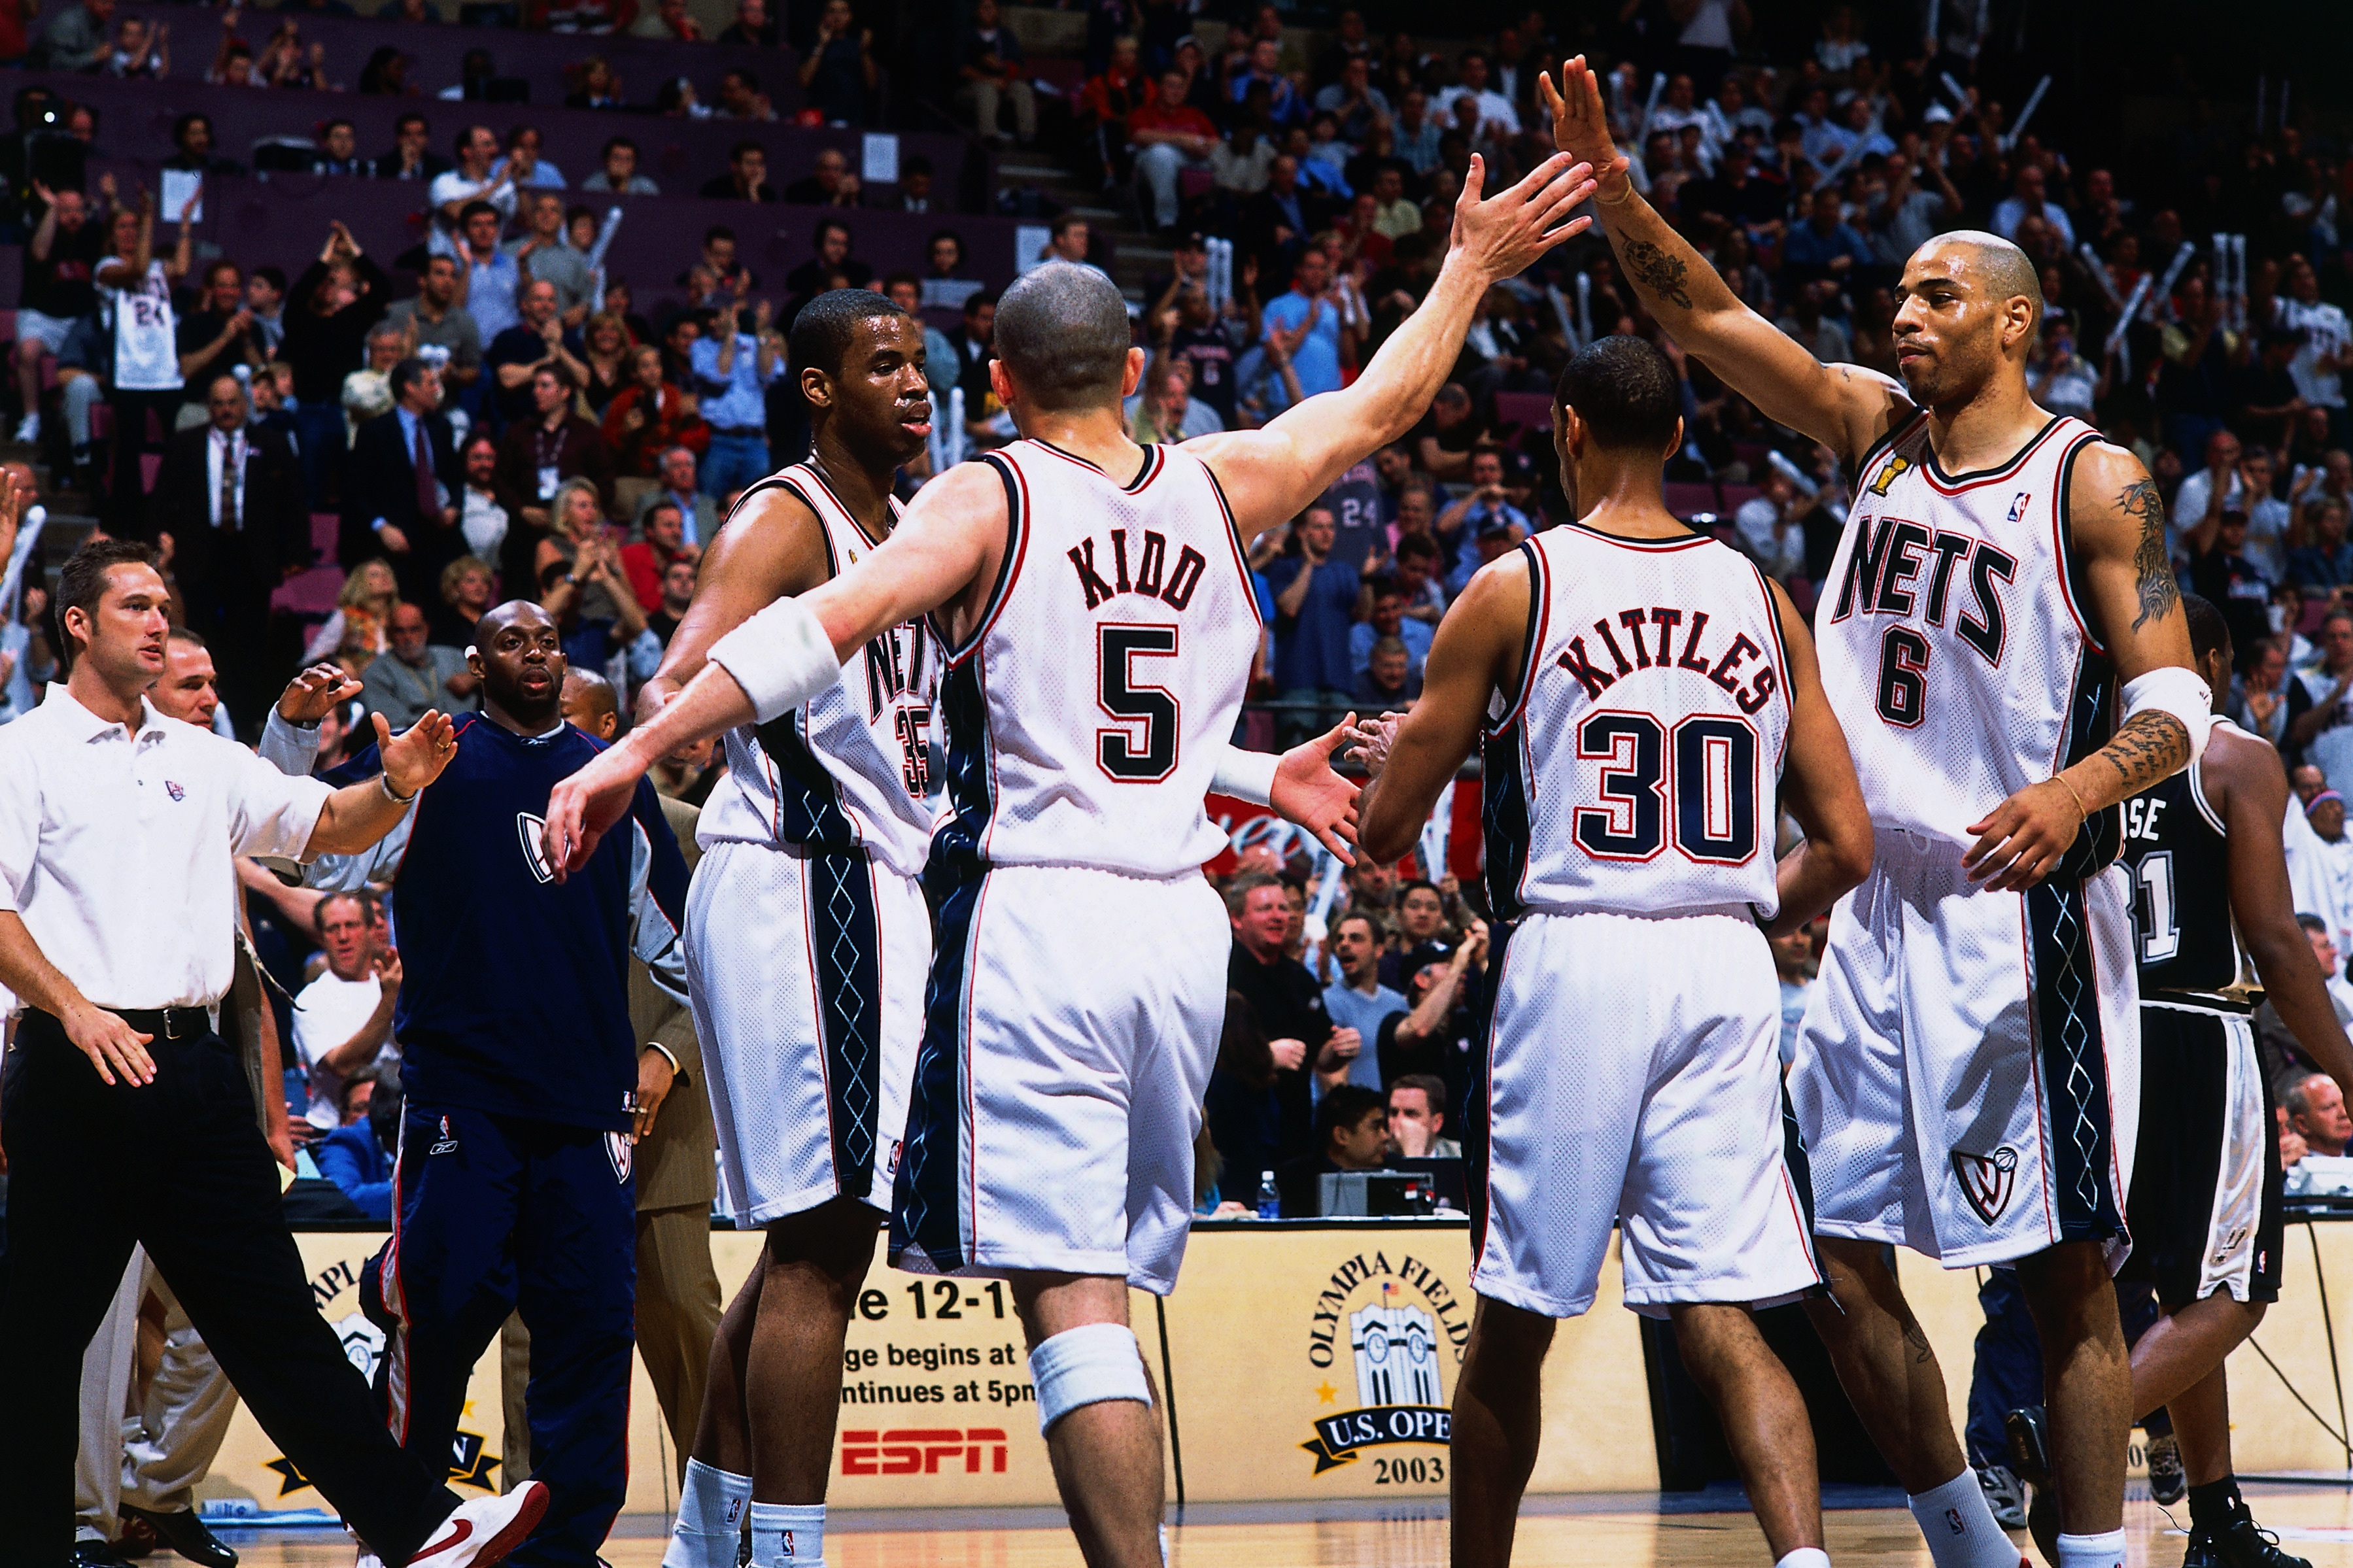 a47b7e5e4ef6 Kenyon Martin  6 and Jason Kidd  5 of the New Jersey Nets celebrate during